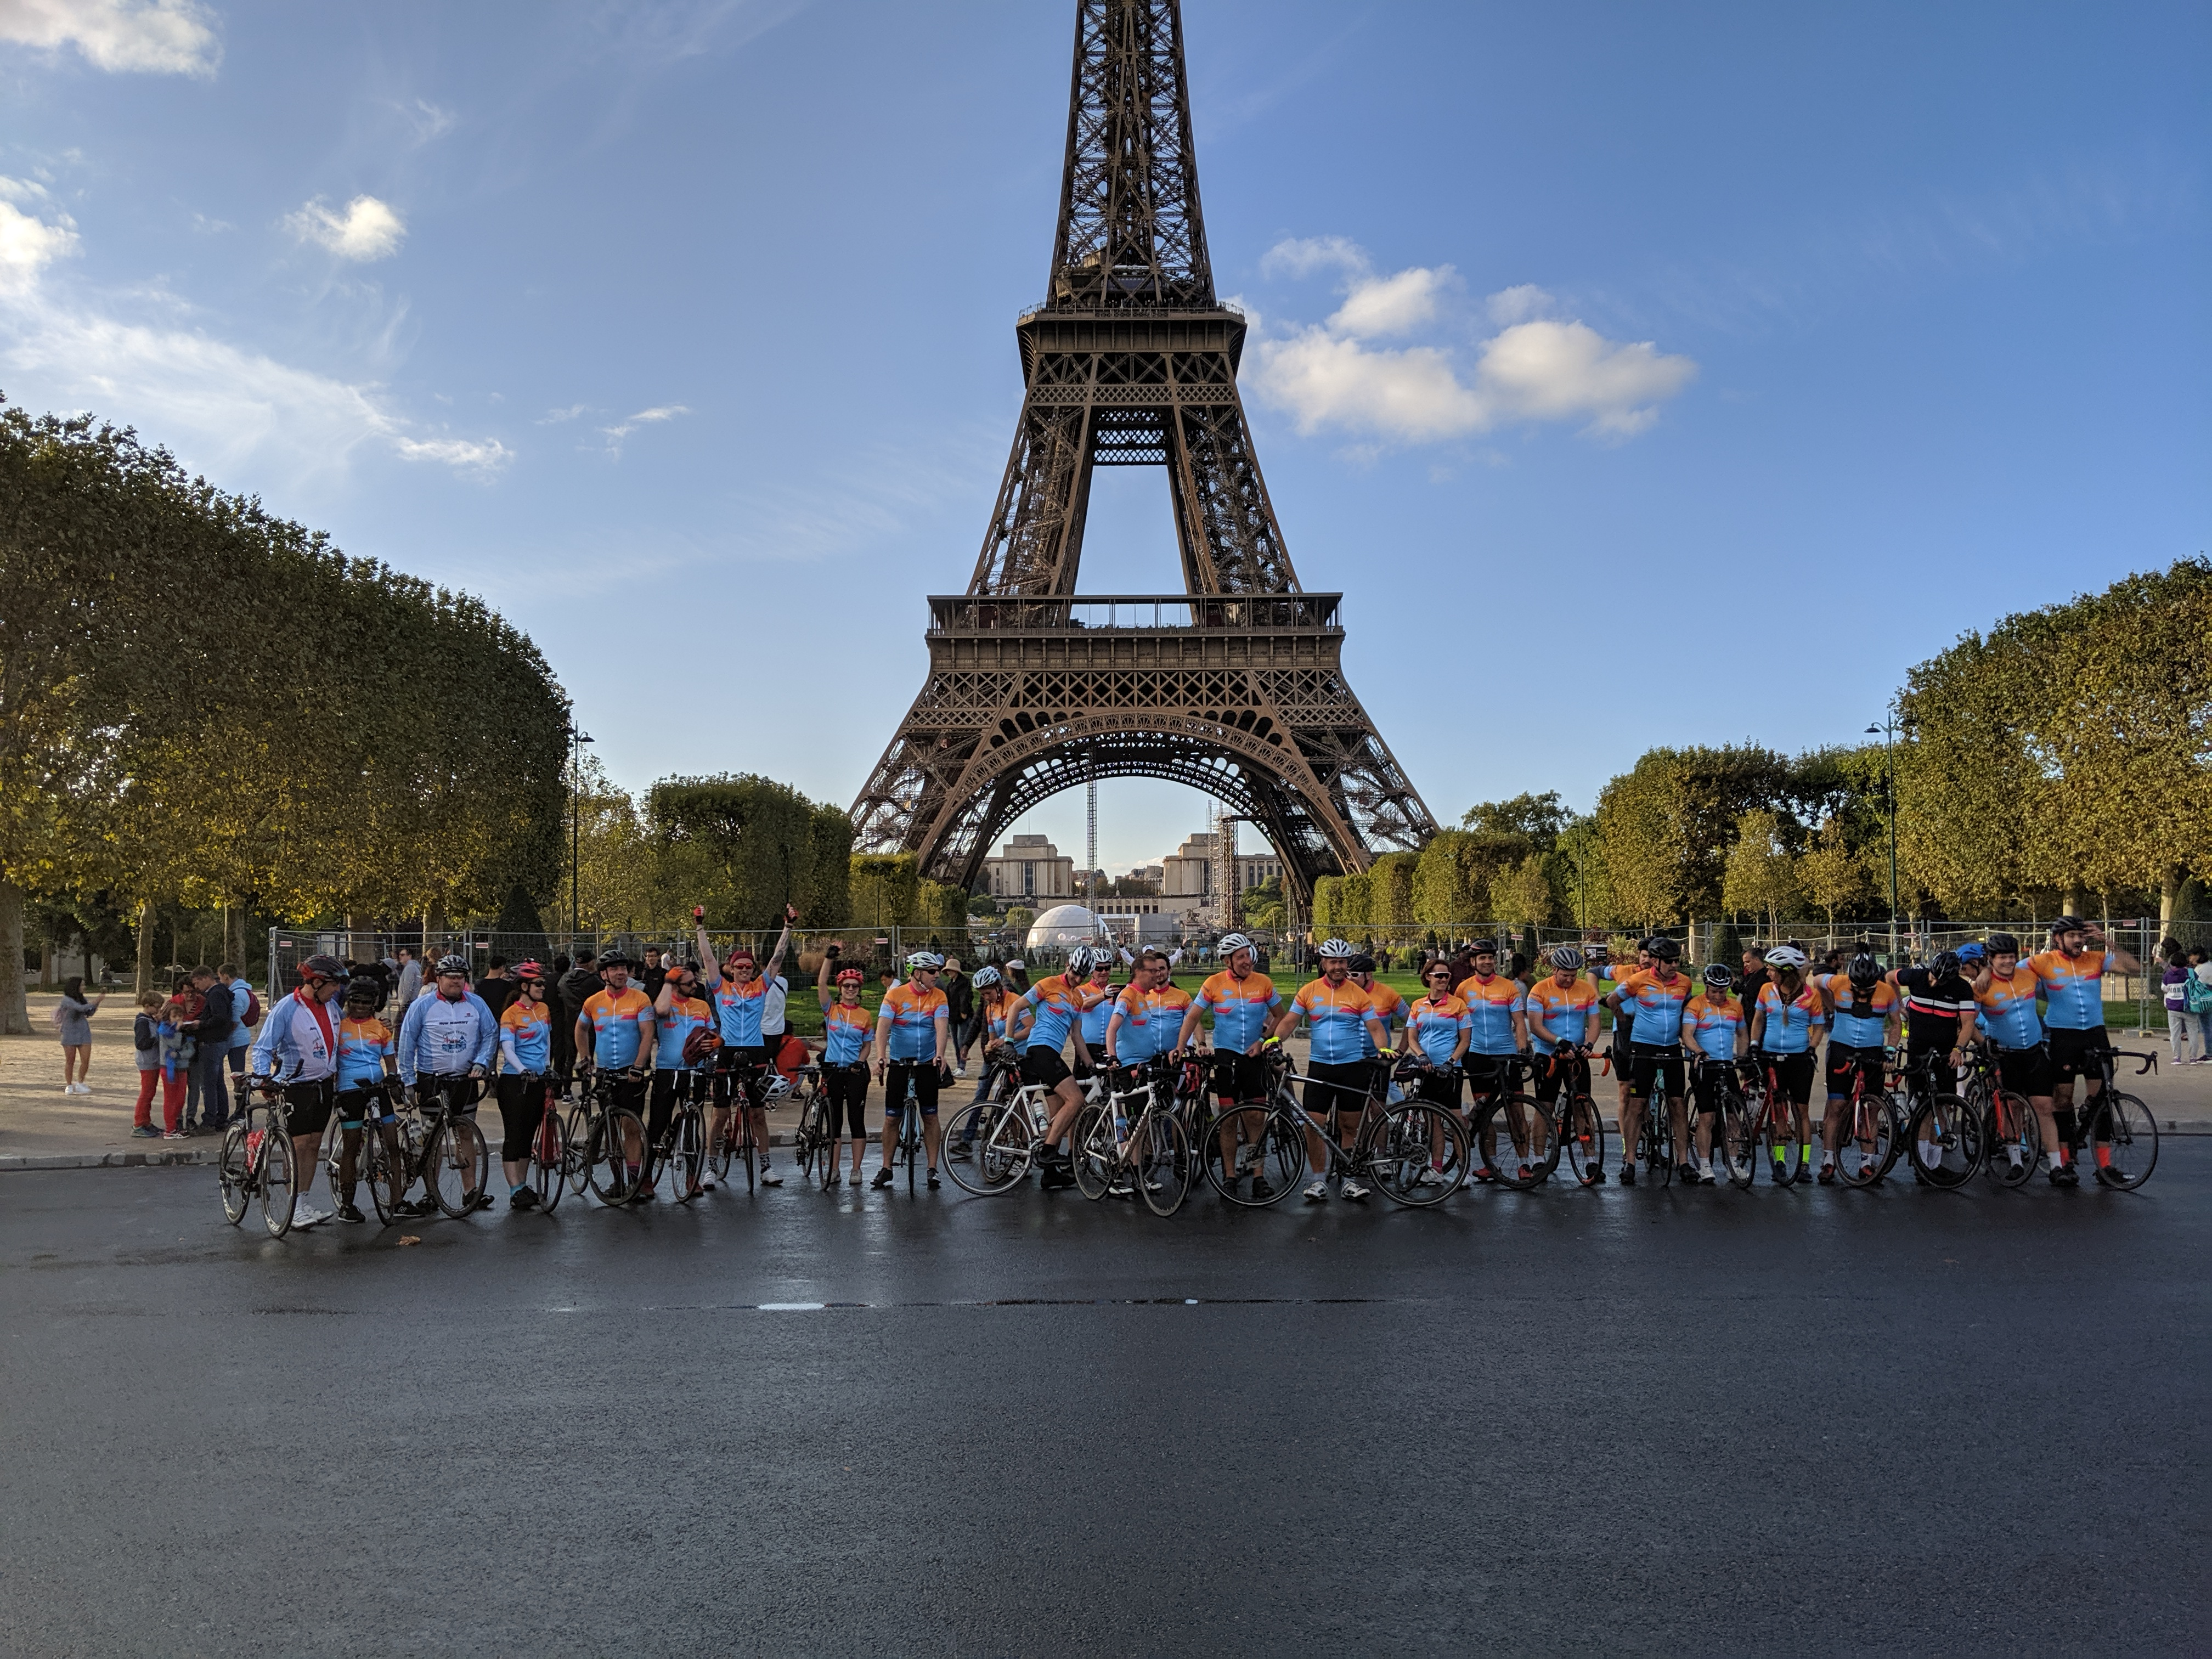 London to Paris 2 (L2P2) by Astriid fundraising photo 1